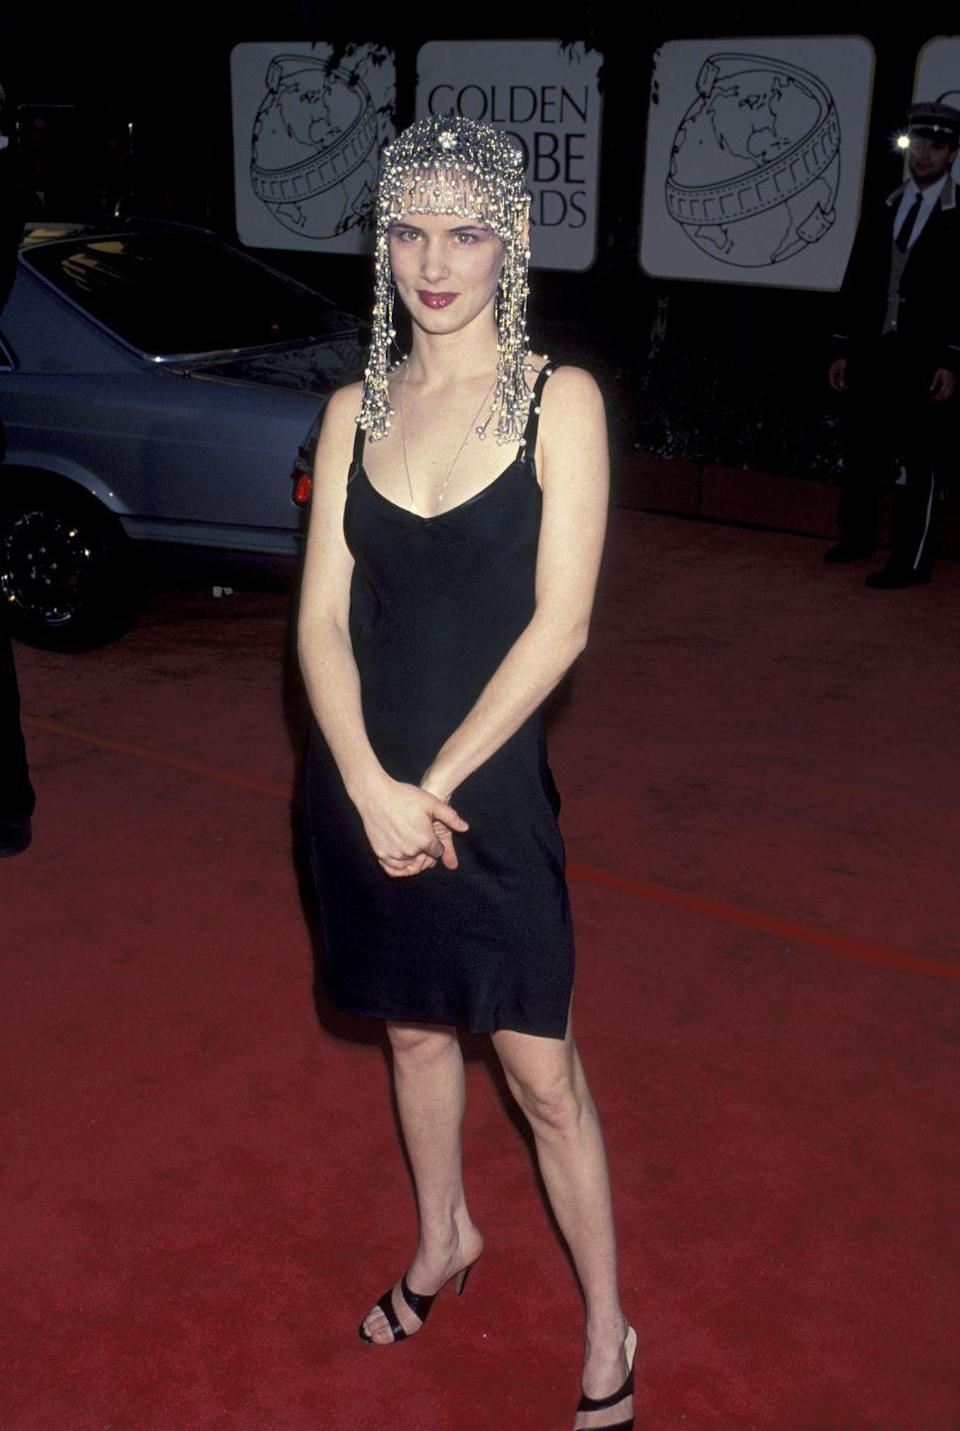 <p>It was not unusual for Juliette Lewis to show up to a red carpet wearing something, well, <em>unique</em>, but this look she sported at the 1994 Golden Globe Awards really is, uh... something. The simple black dress and kitten heels would have been fine, if not a little boring, but this sparkling headdress takes it over the top.<br></p>